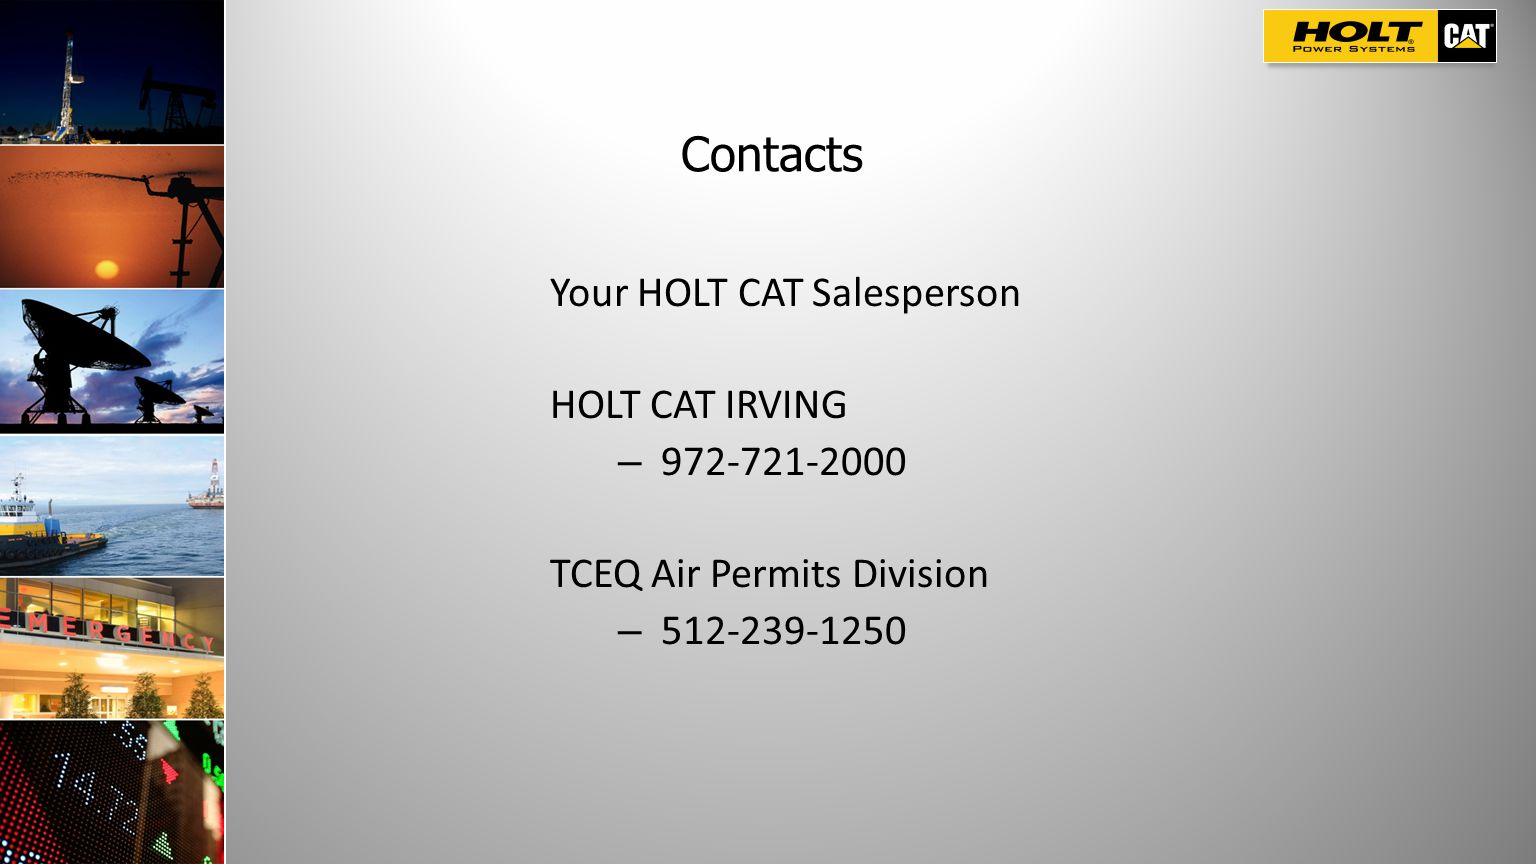 Contacts Your HOLT CAT Salesperson HOLT CAT IRVING 972-721-2000